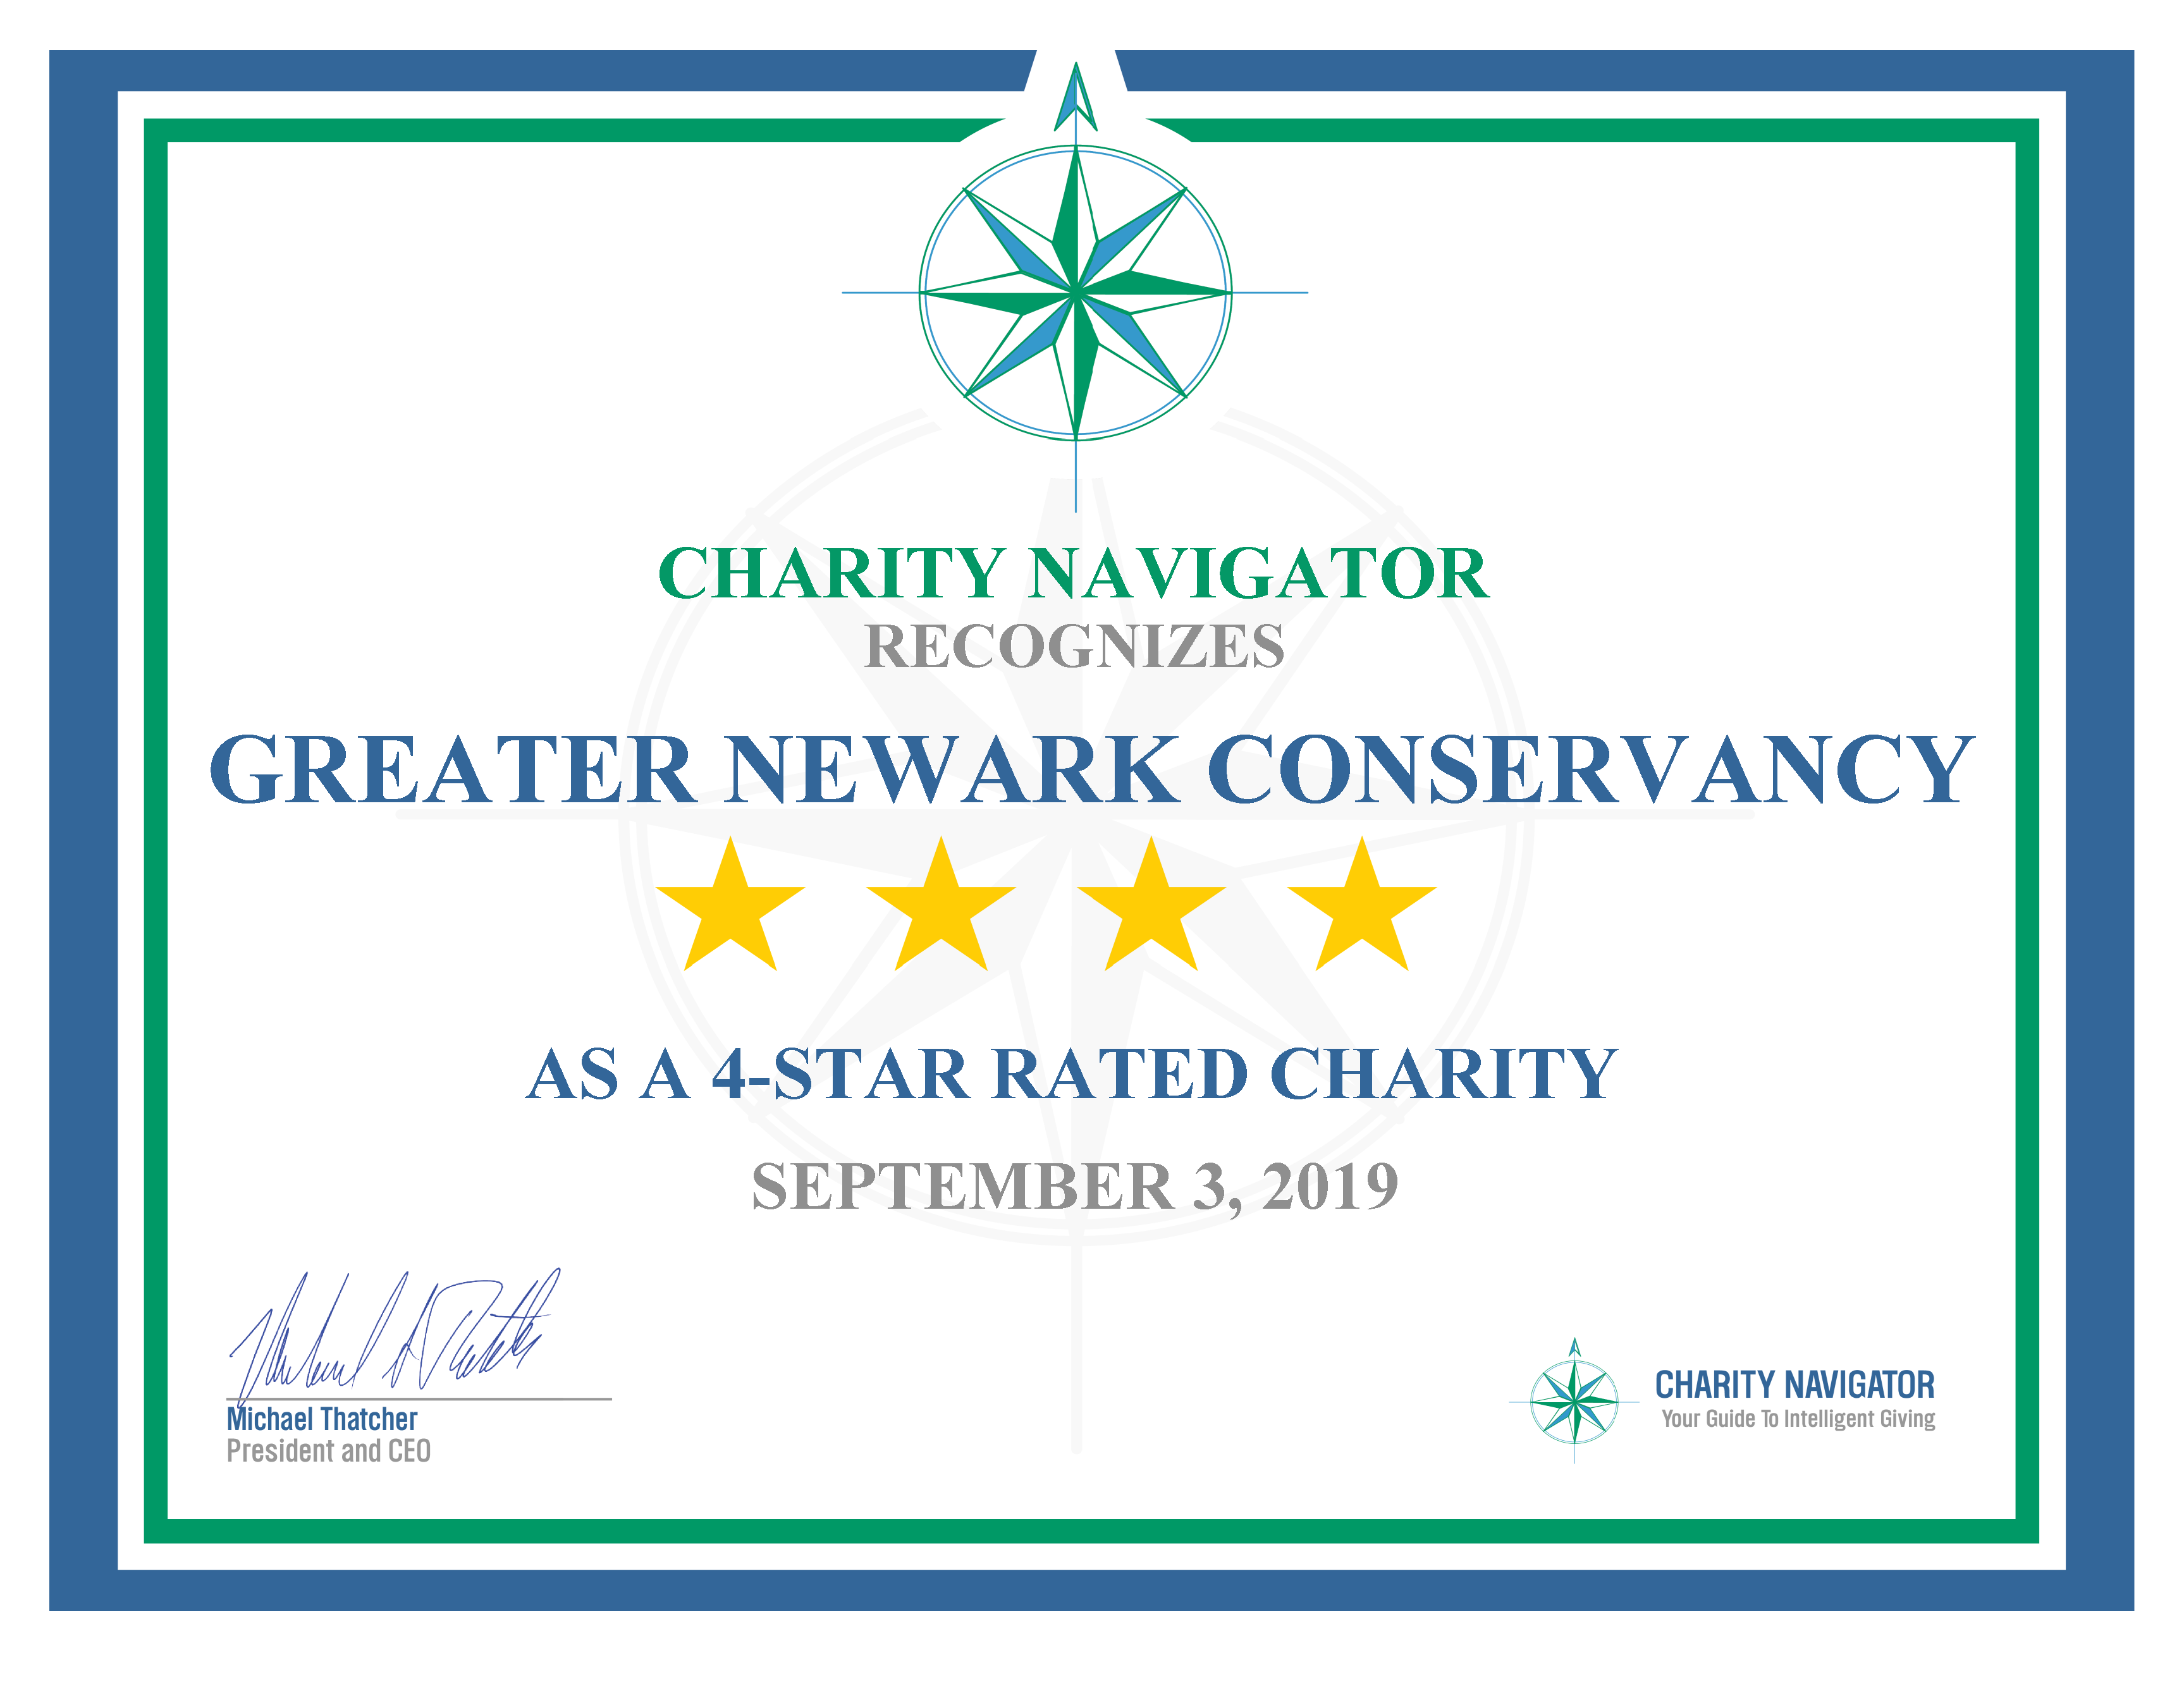 We Have a 4-Star Rating from Charity Navigator!